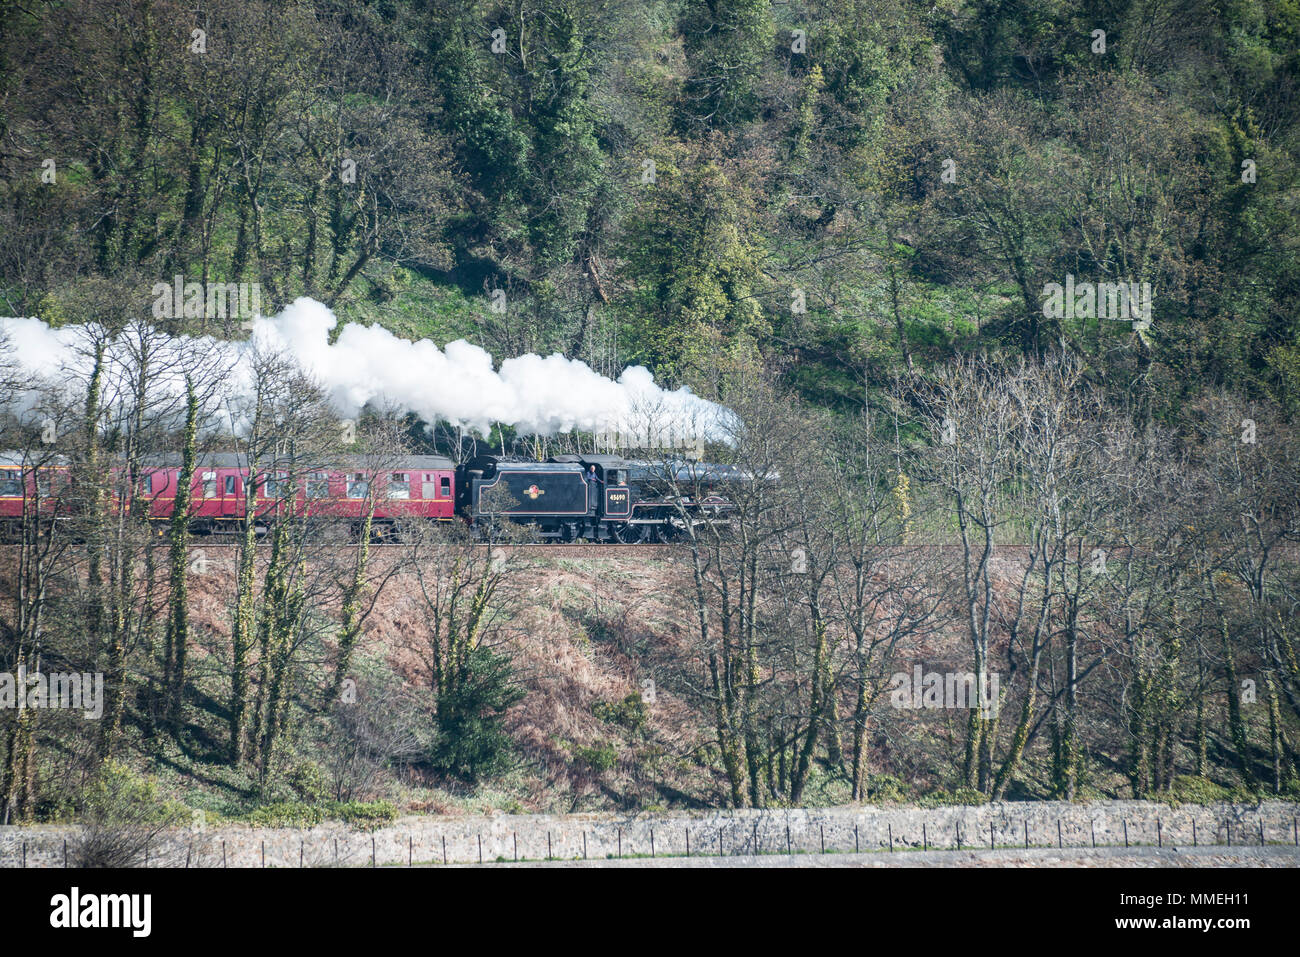 LMS Jubilee Class 5690 Leander steam locomotive runs along Silversands Bay - Stock Image